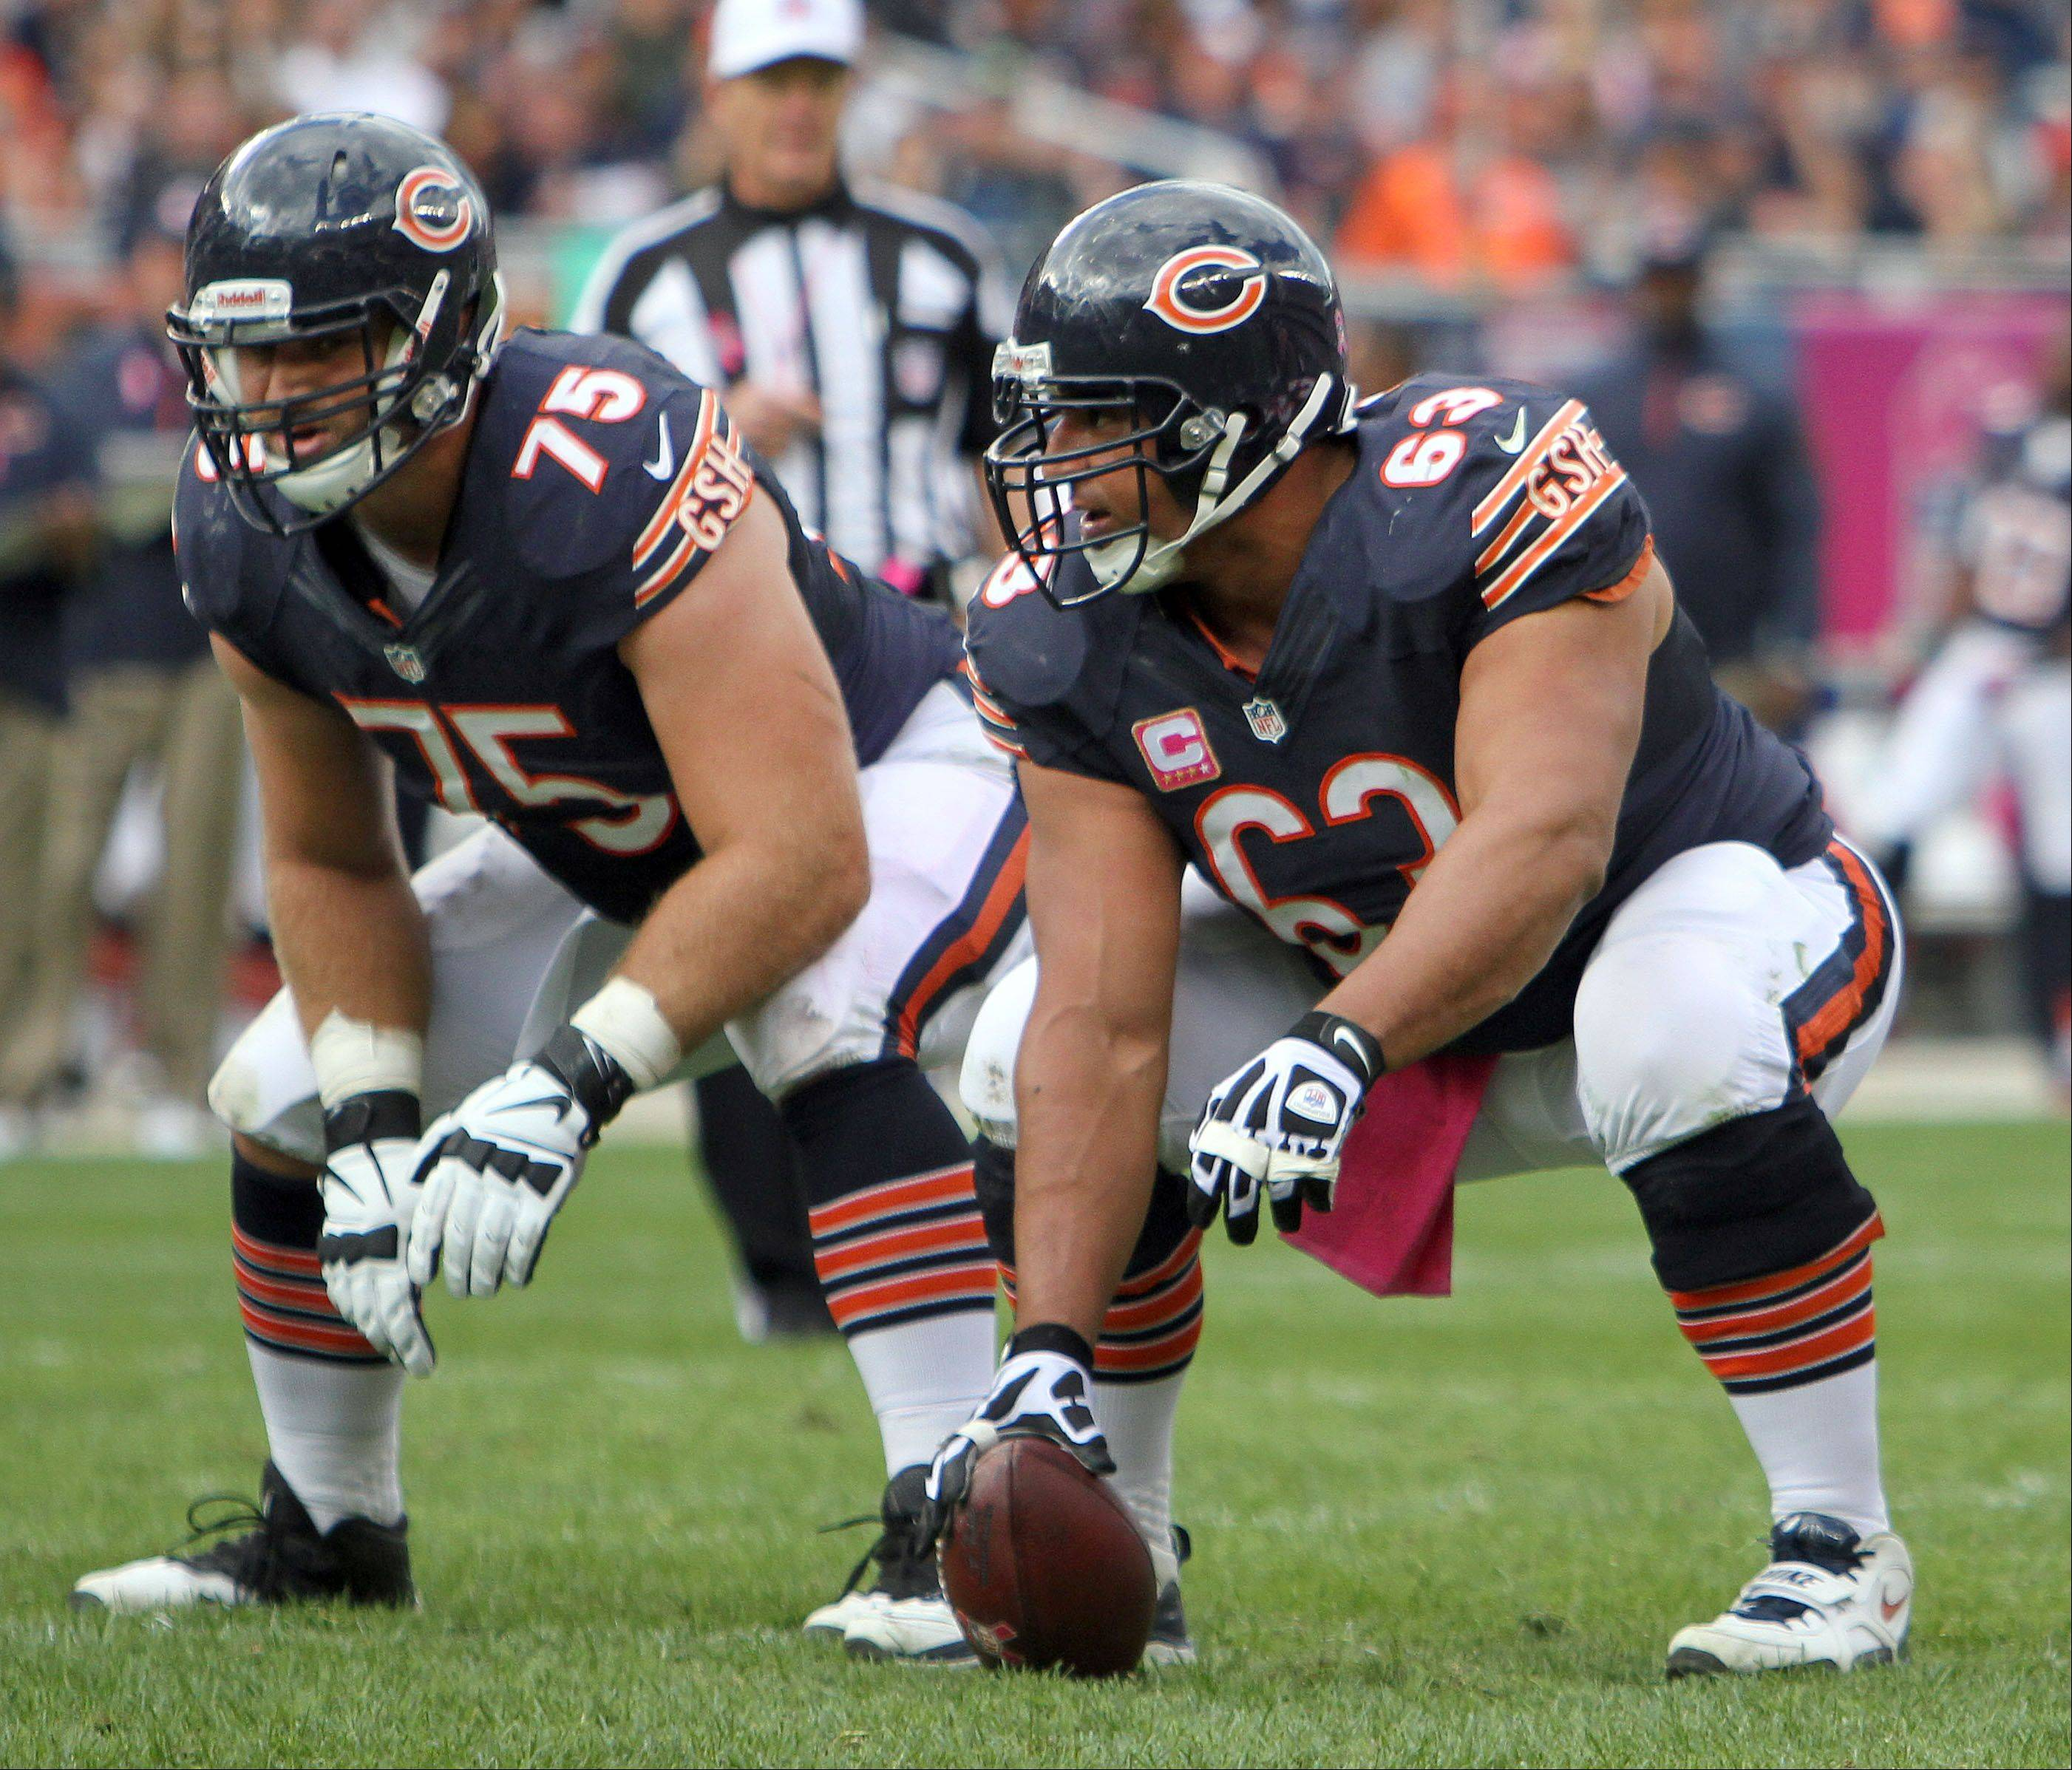 Center Roberto Garza, a 13-year veteran including the last nine with the Bears, has anchored an offensive line featuring the same five players starting in all 15 games this season -- including rookie Kyle Long, left. The others, who are not pictured, are Jermon Bushrod, Matt Slauson and Jordan Mills.